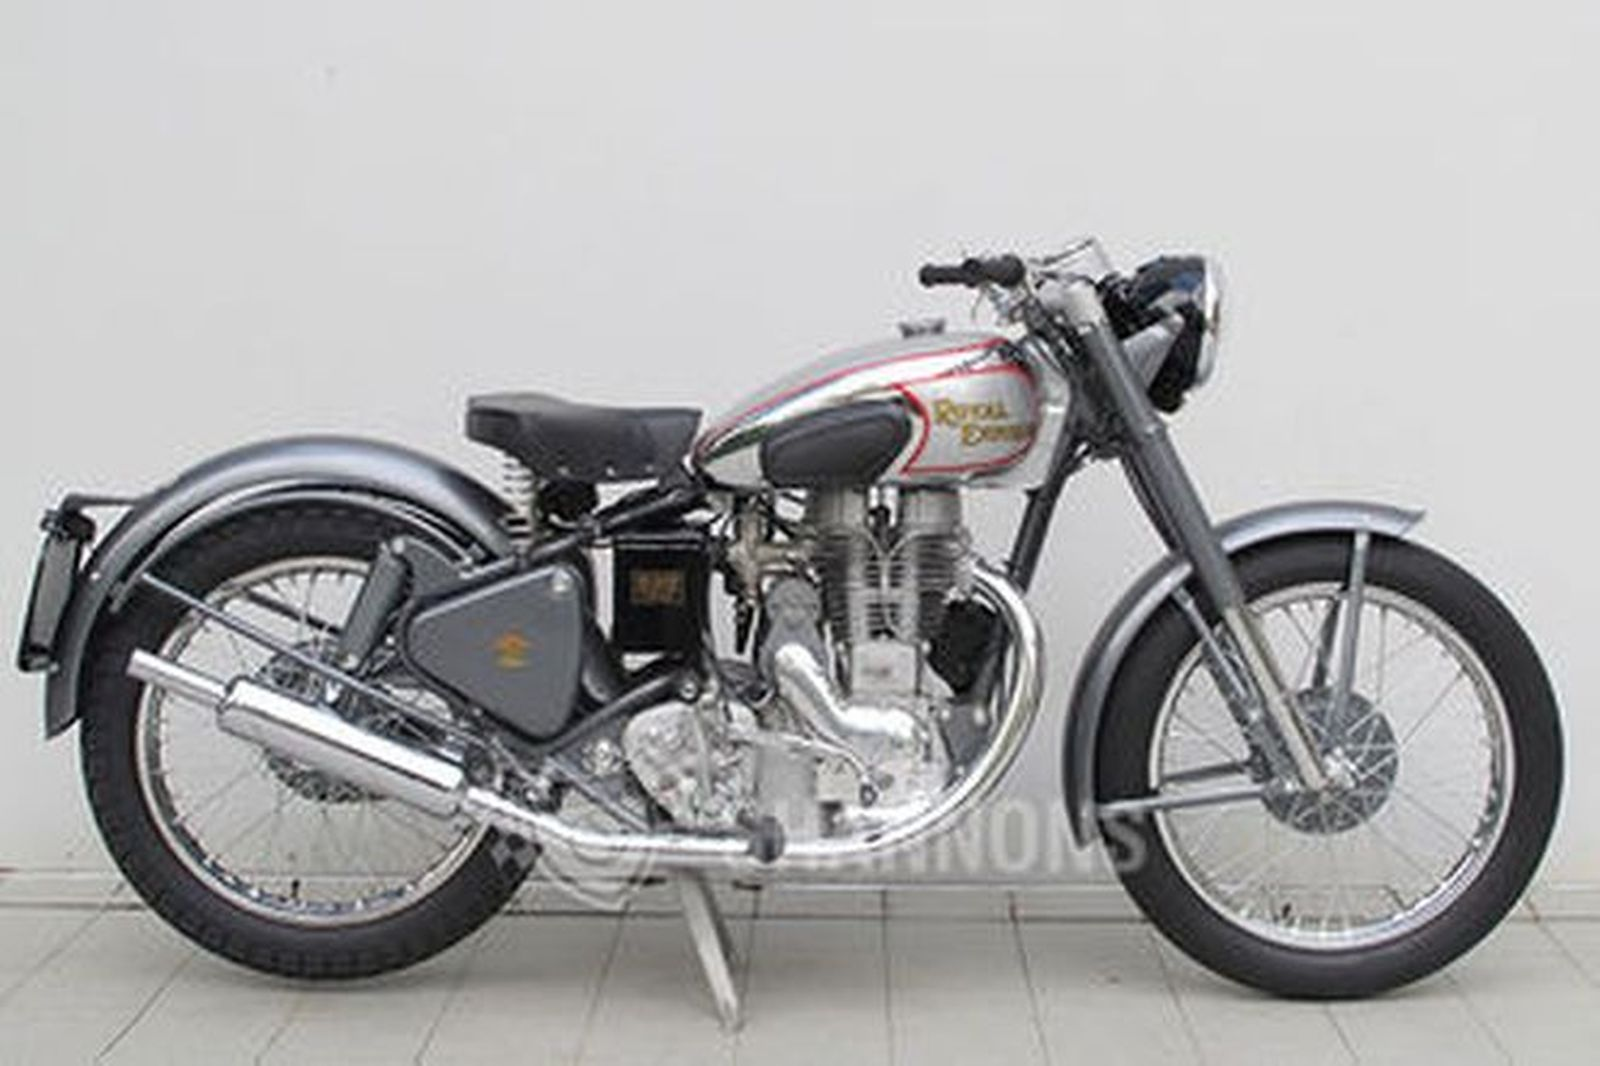 sold royal enfield bullet 350cc motorcycle auctions lot e shannons. Black Bedroom Furniture Sets. Home Design Ideas